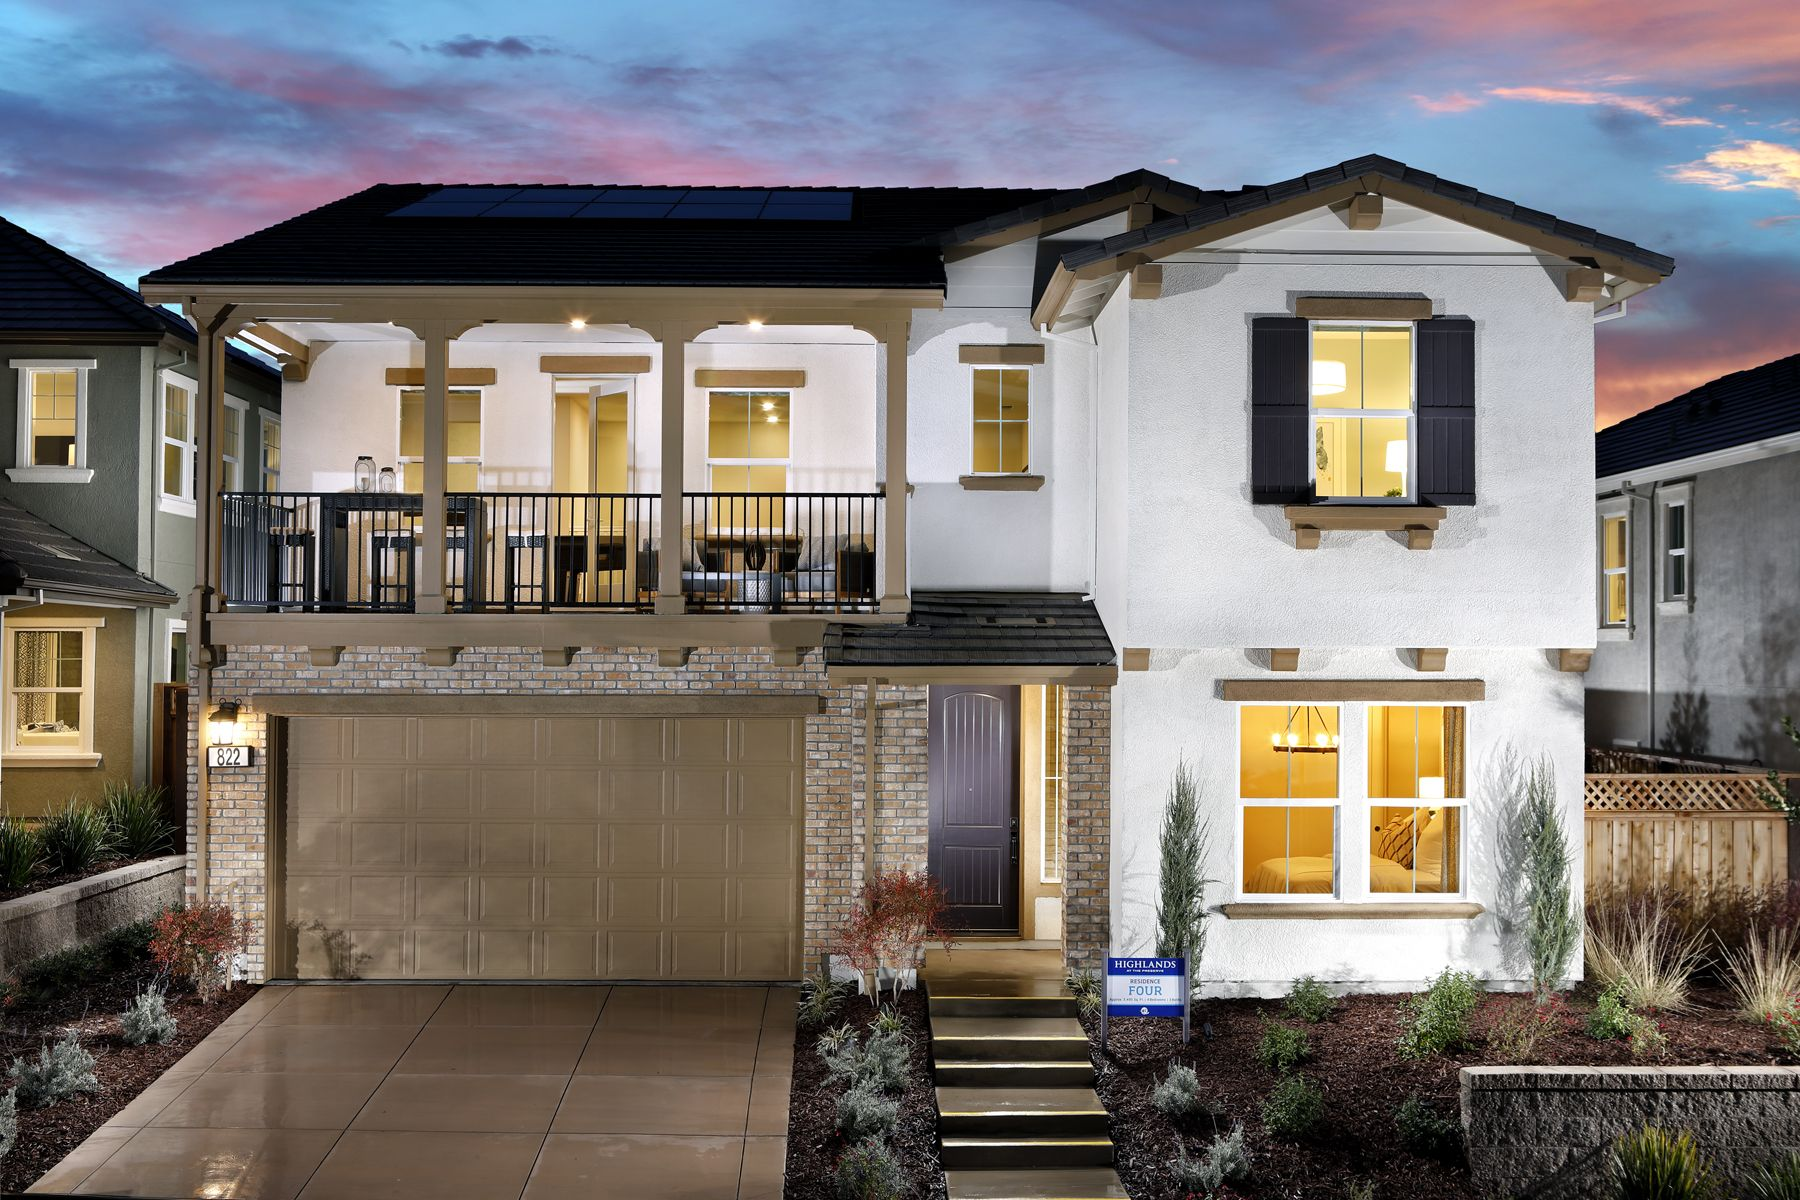 Make your dreams come true and own at Highlands at The